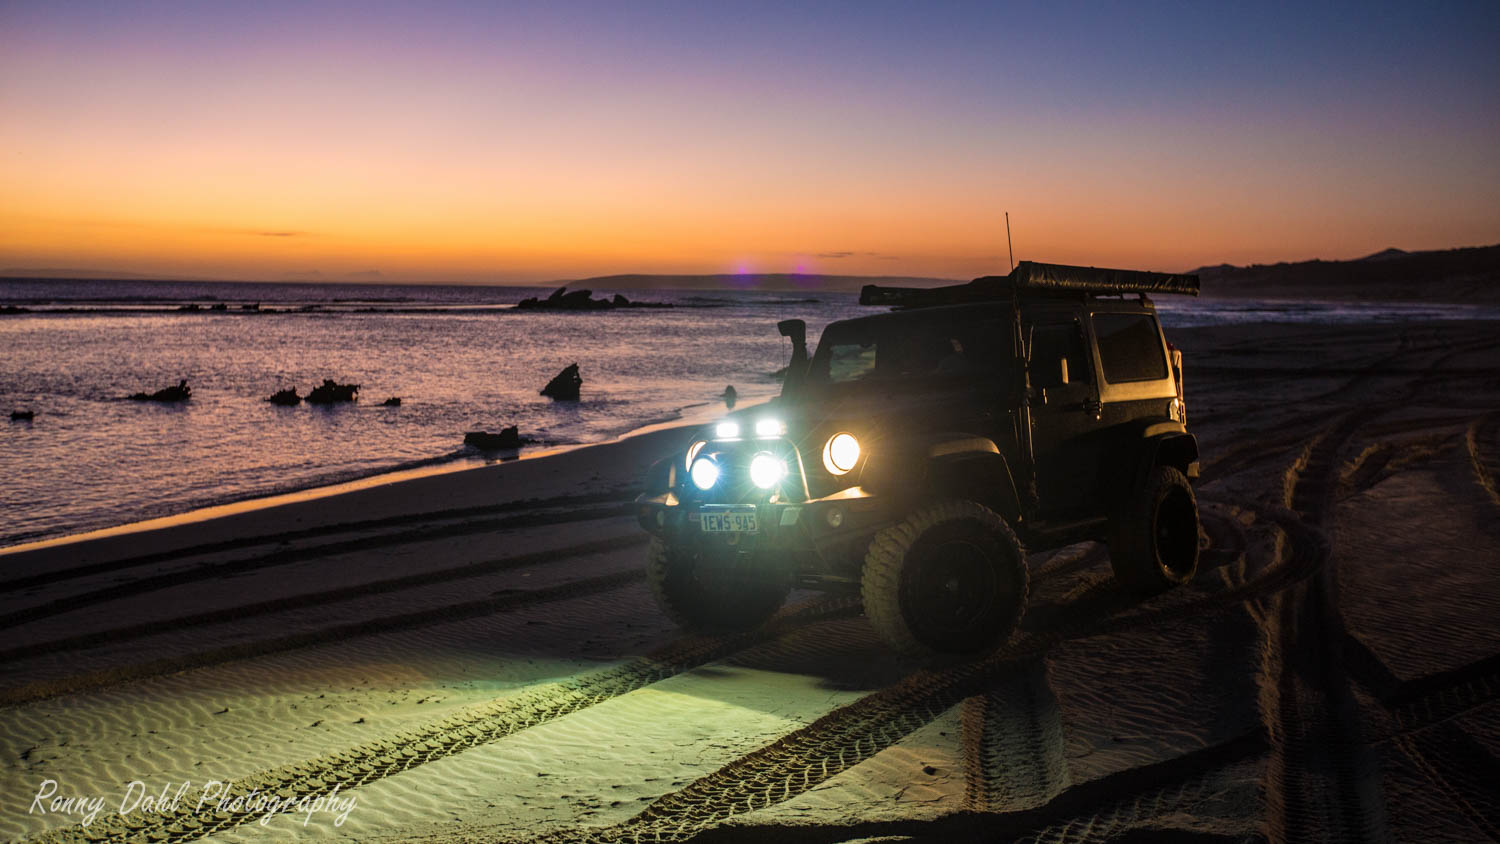 A Jeep JK Wrangler on the beach in the sunset in Western Australia.